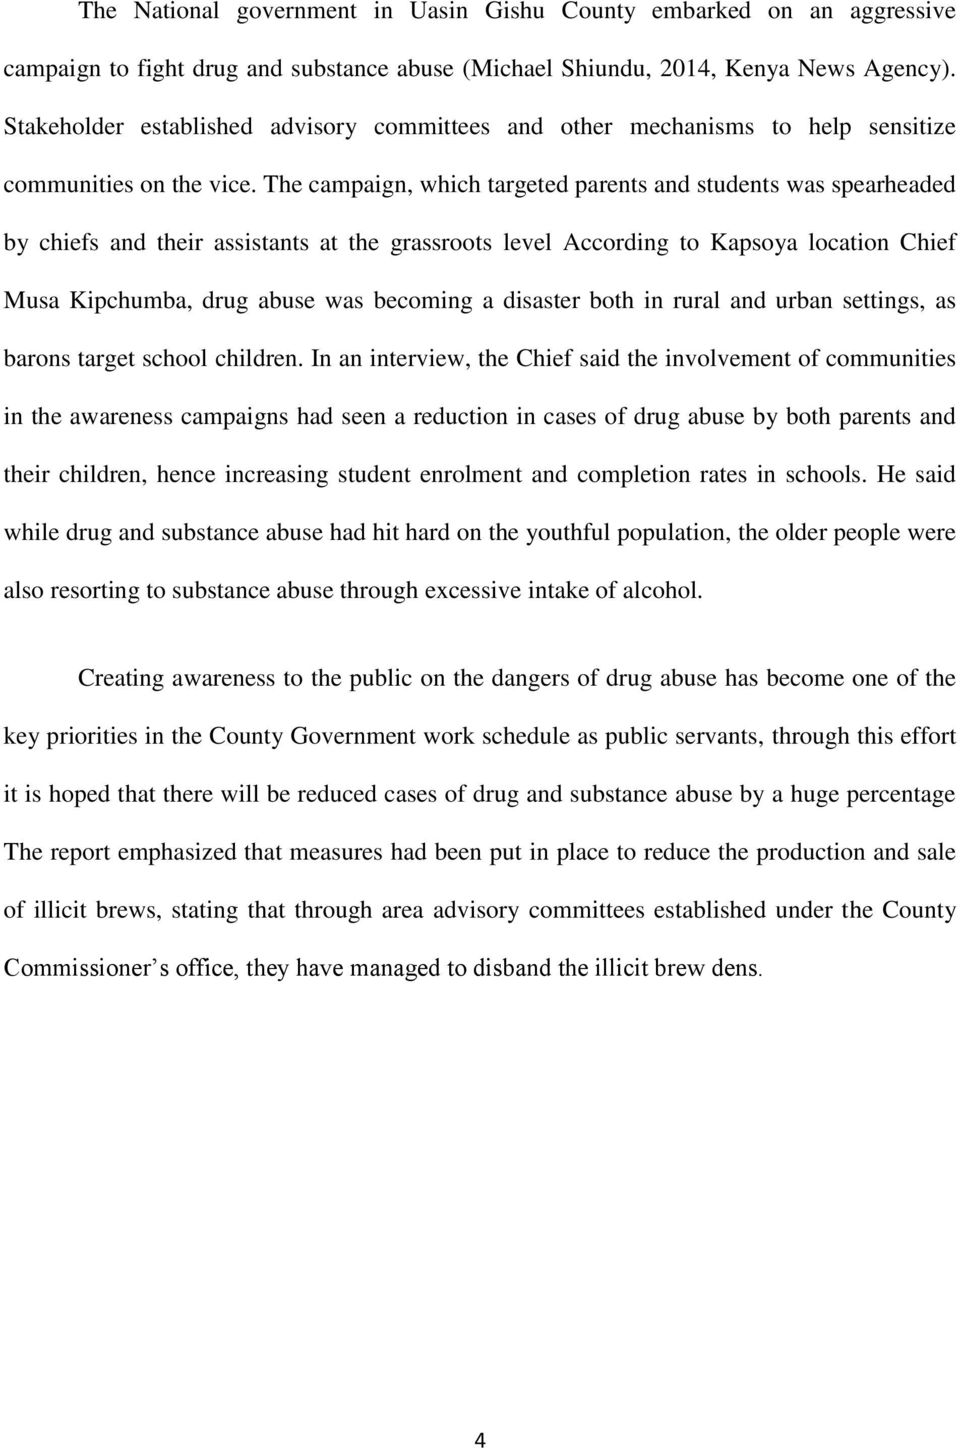 argumentative essay on drug trafficking Human trafficking thesis statement examples the illegal trade and exploitation of human beings for forced labor, prostitution and reproductive favors is termed human trafficking human trafficking is a transnational phenomenon and is second only to the international drug trade in relation to organized crime.